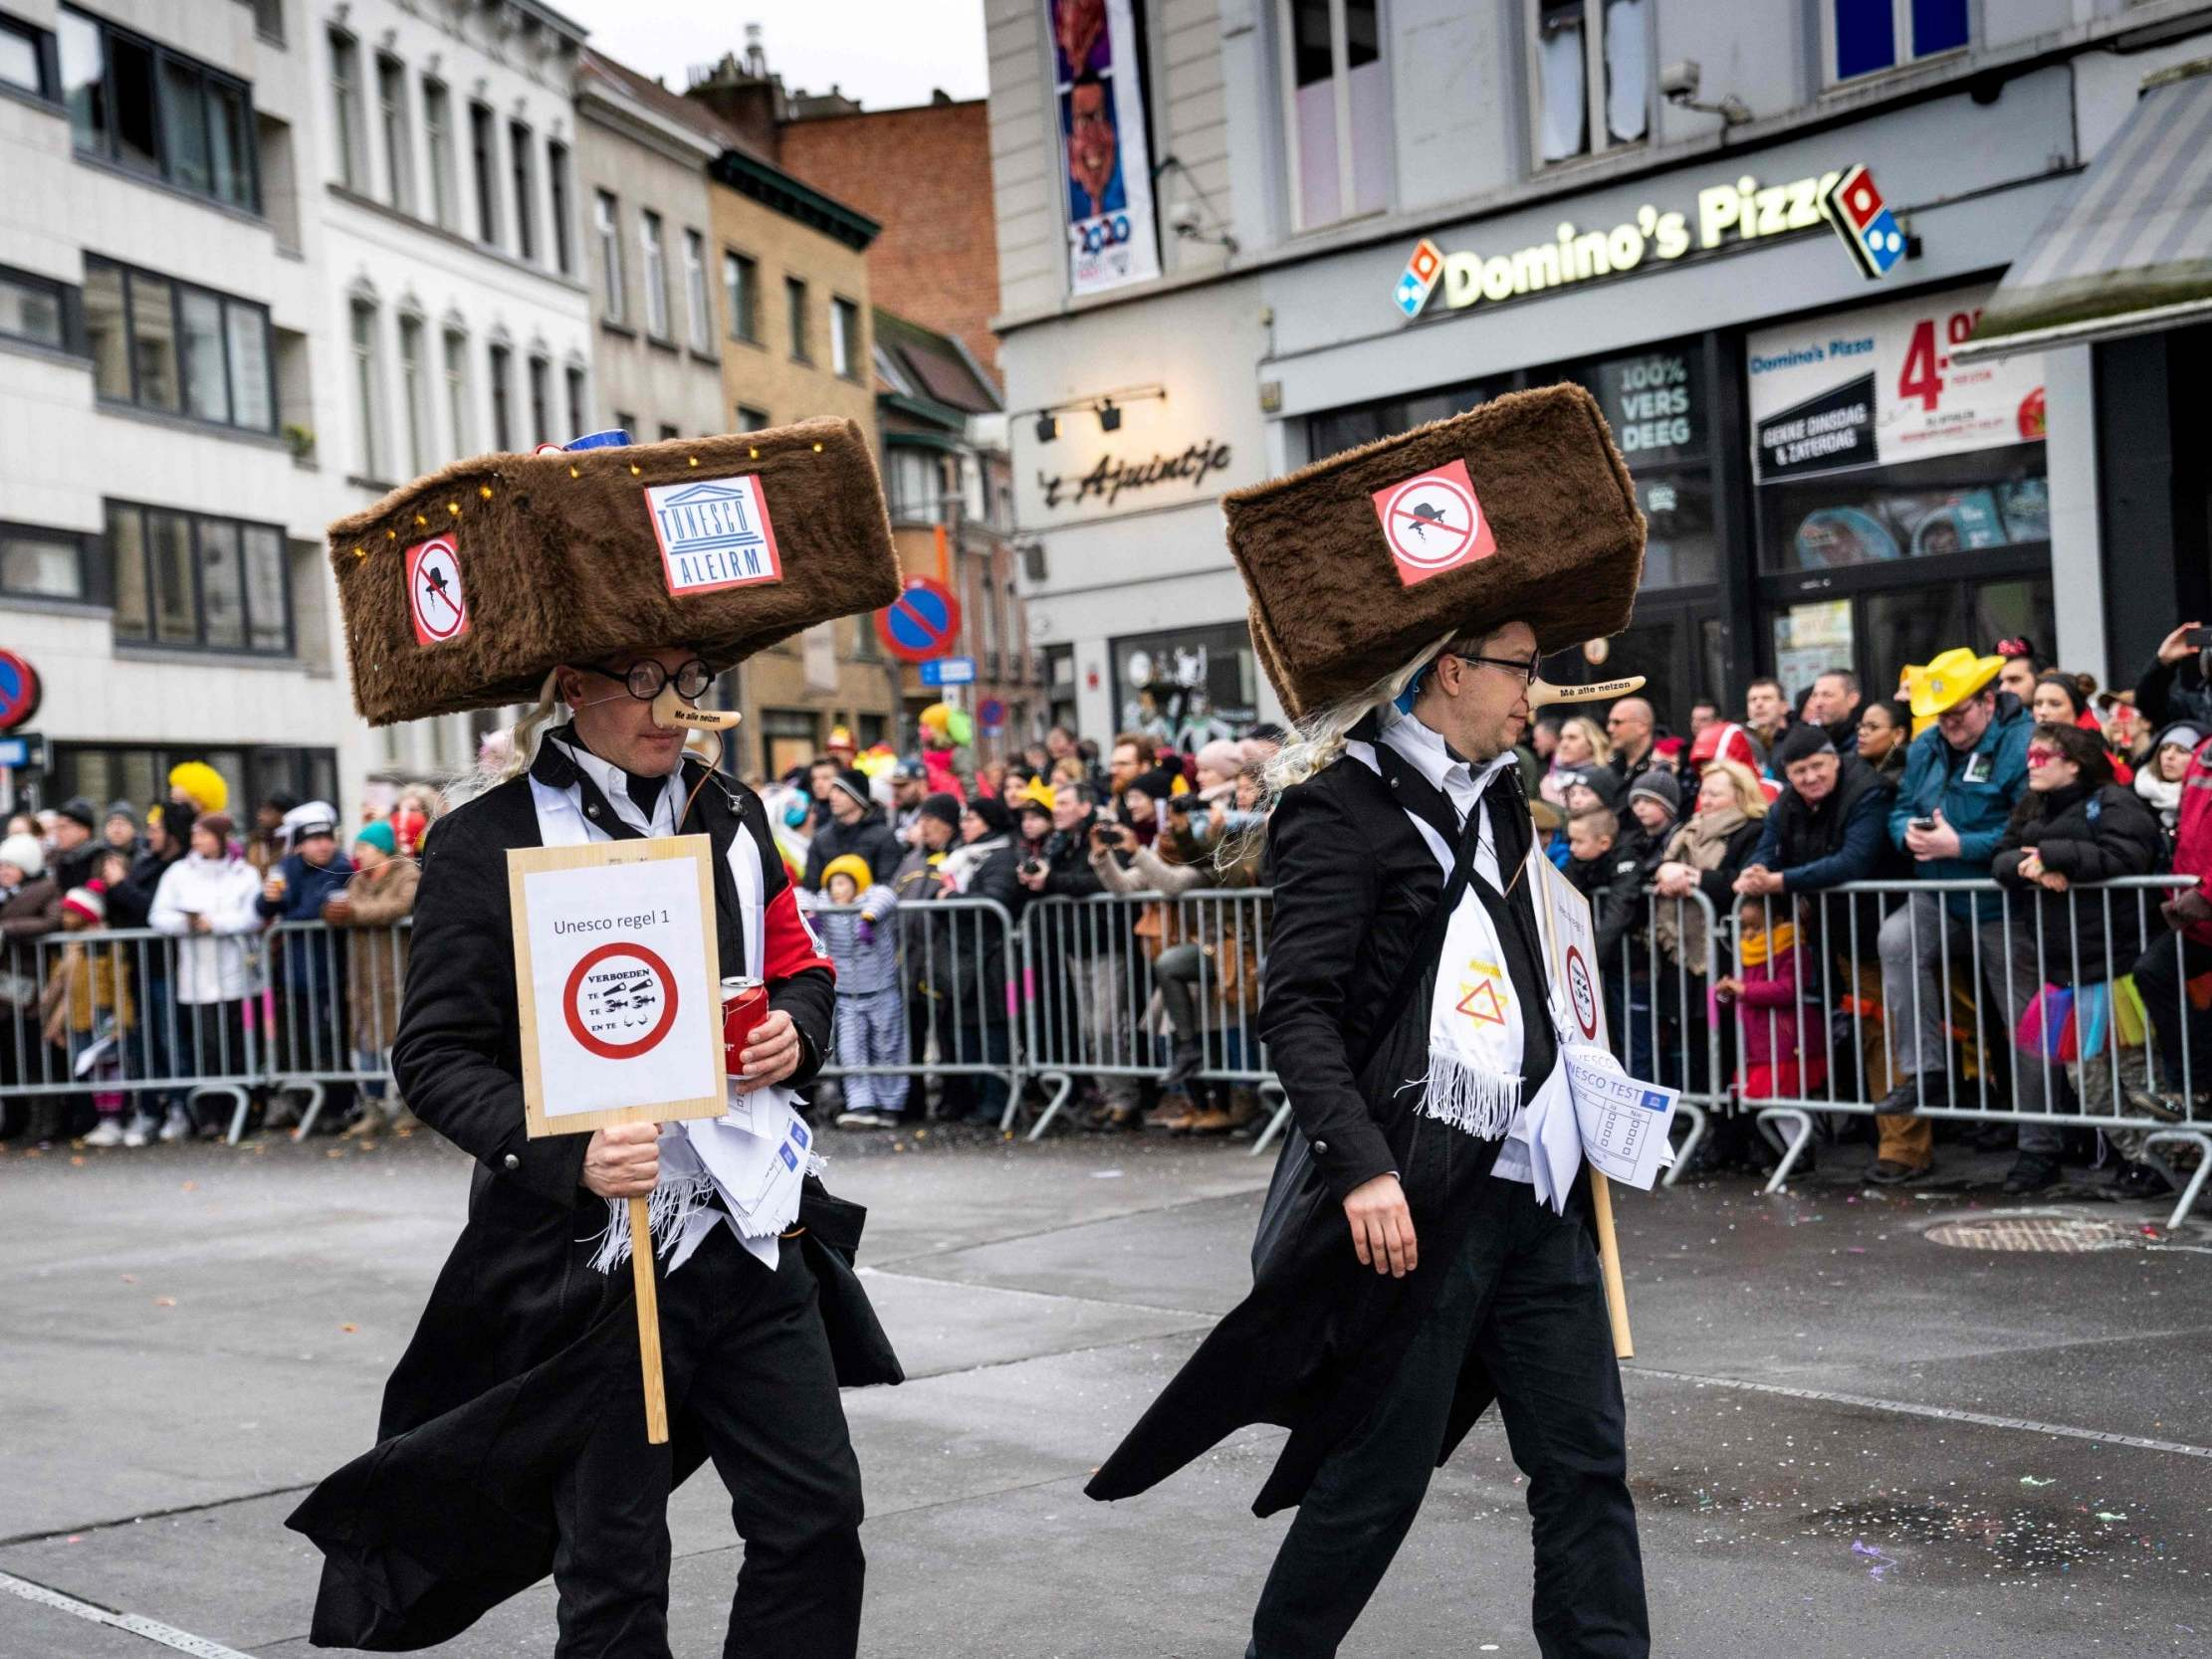 Antisemitic parade in Belgian city depicting Jews with hooked noses 'just fun,' says mayor's spokesman